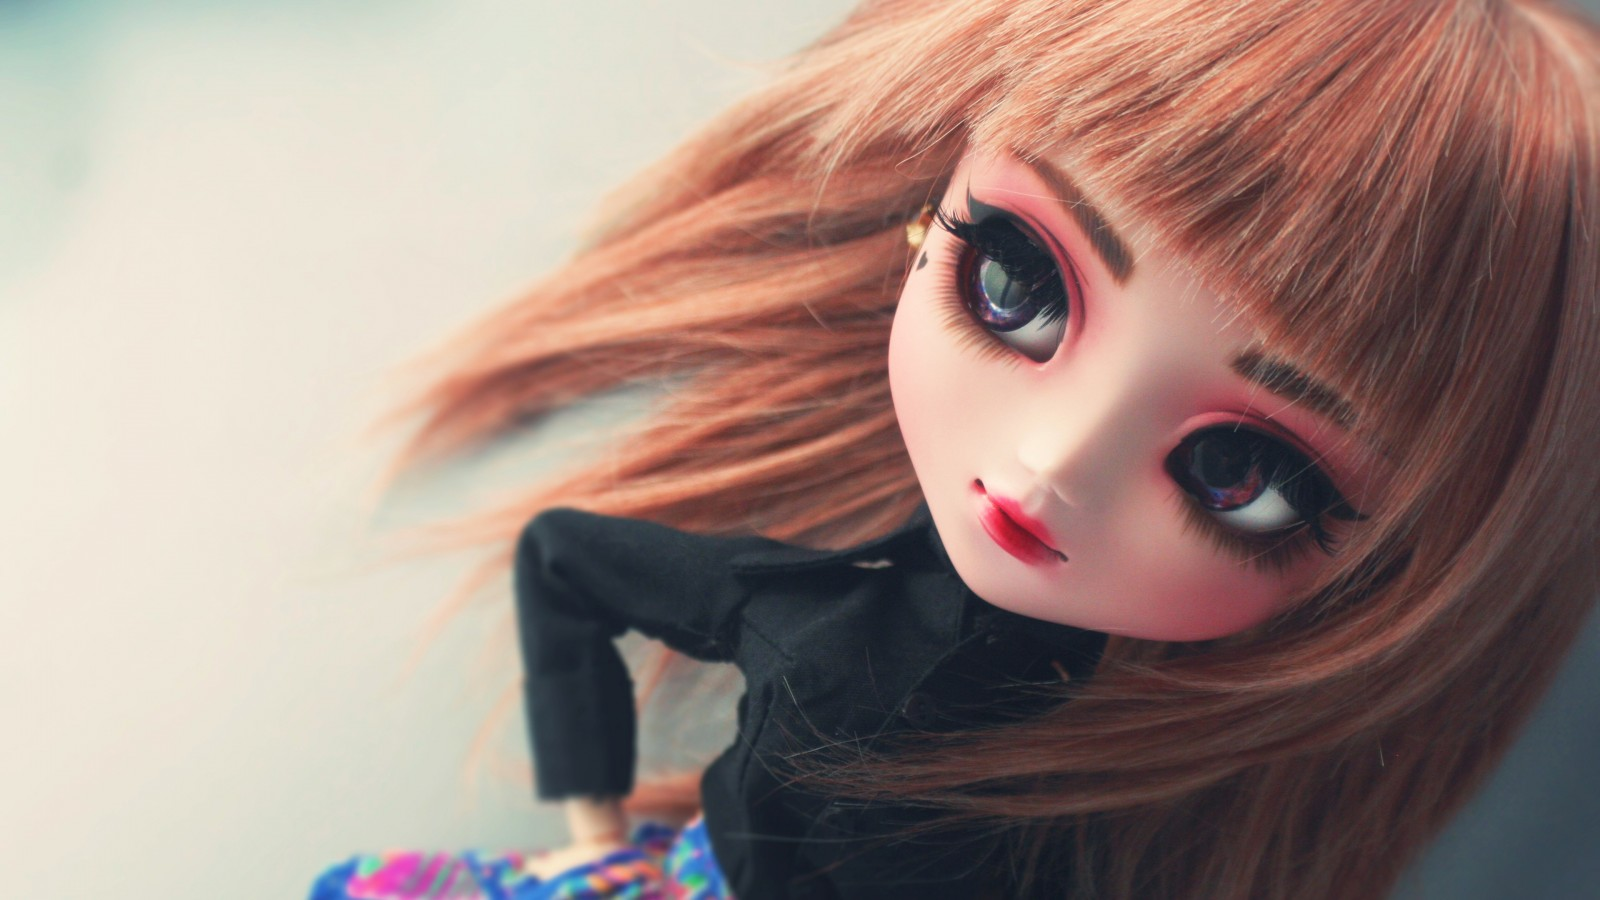 Doll Wallpaper Hd Cute Girly Doll 4k Wallpapers Hd Wallpapers Id 27244